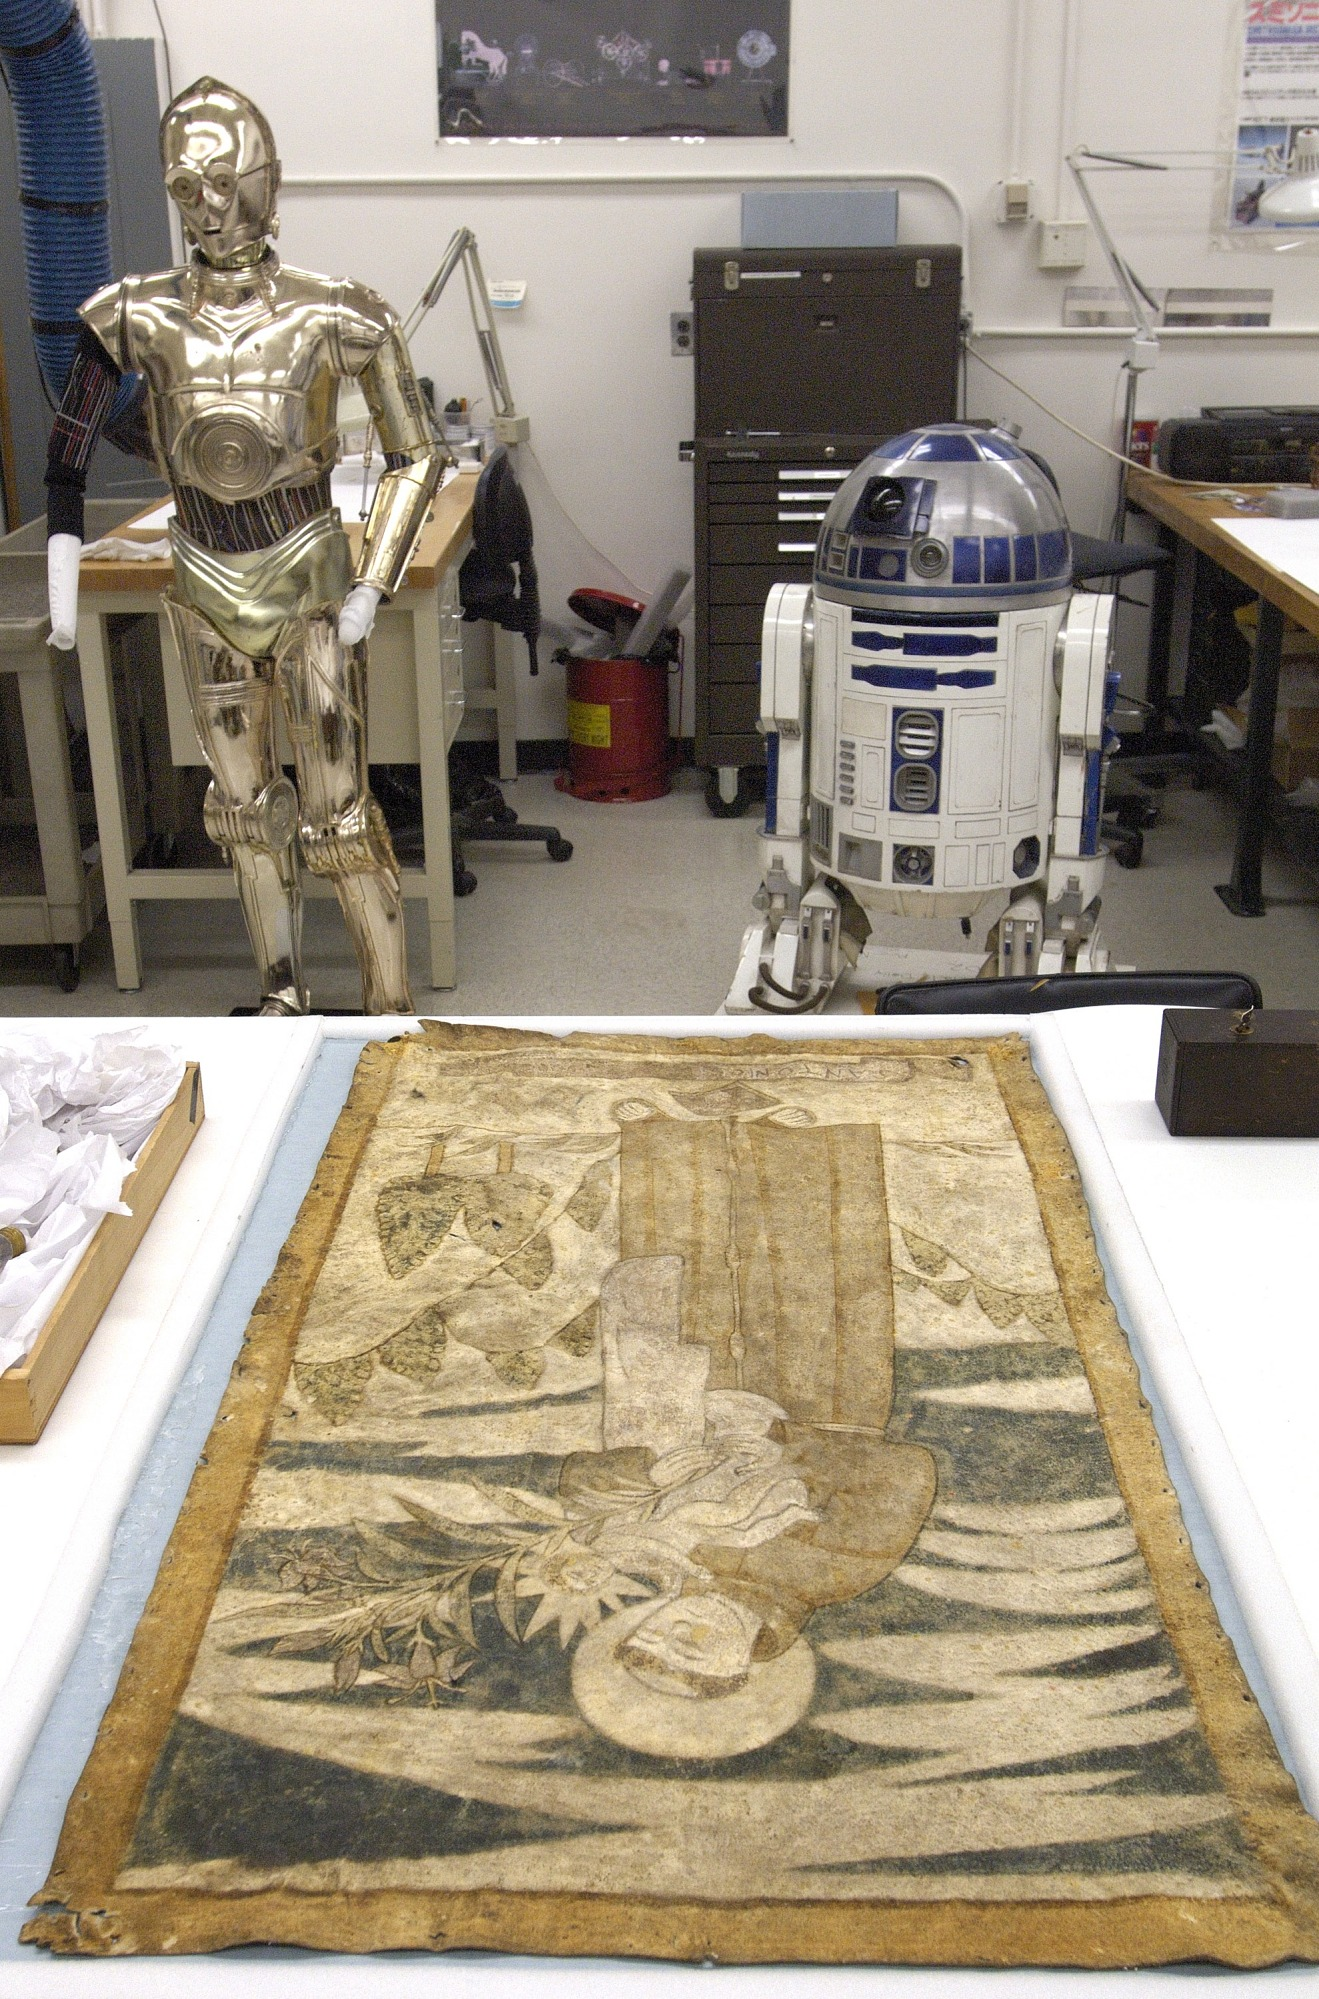 C-3PO and R2-D2, NMAH Iconic Collections on View